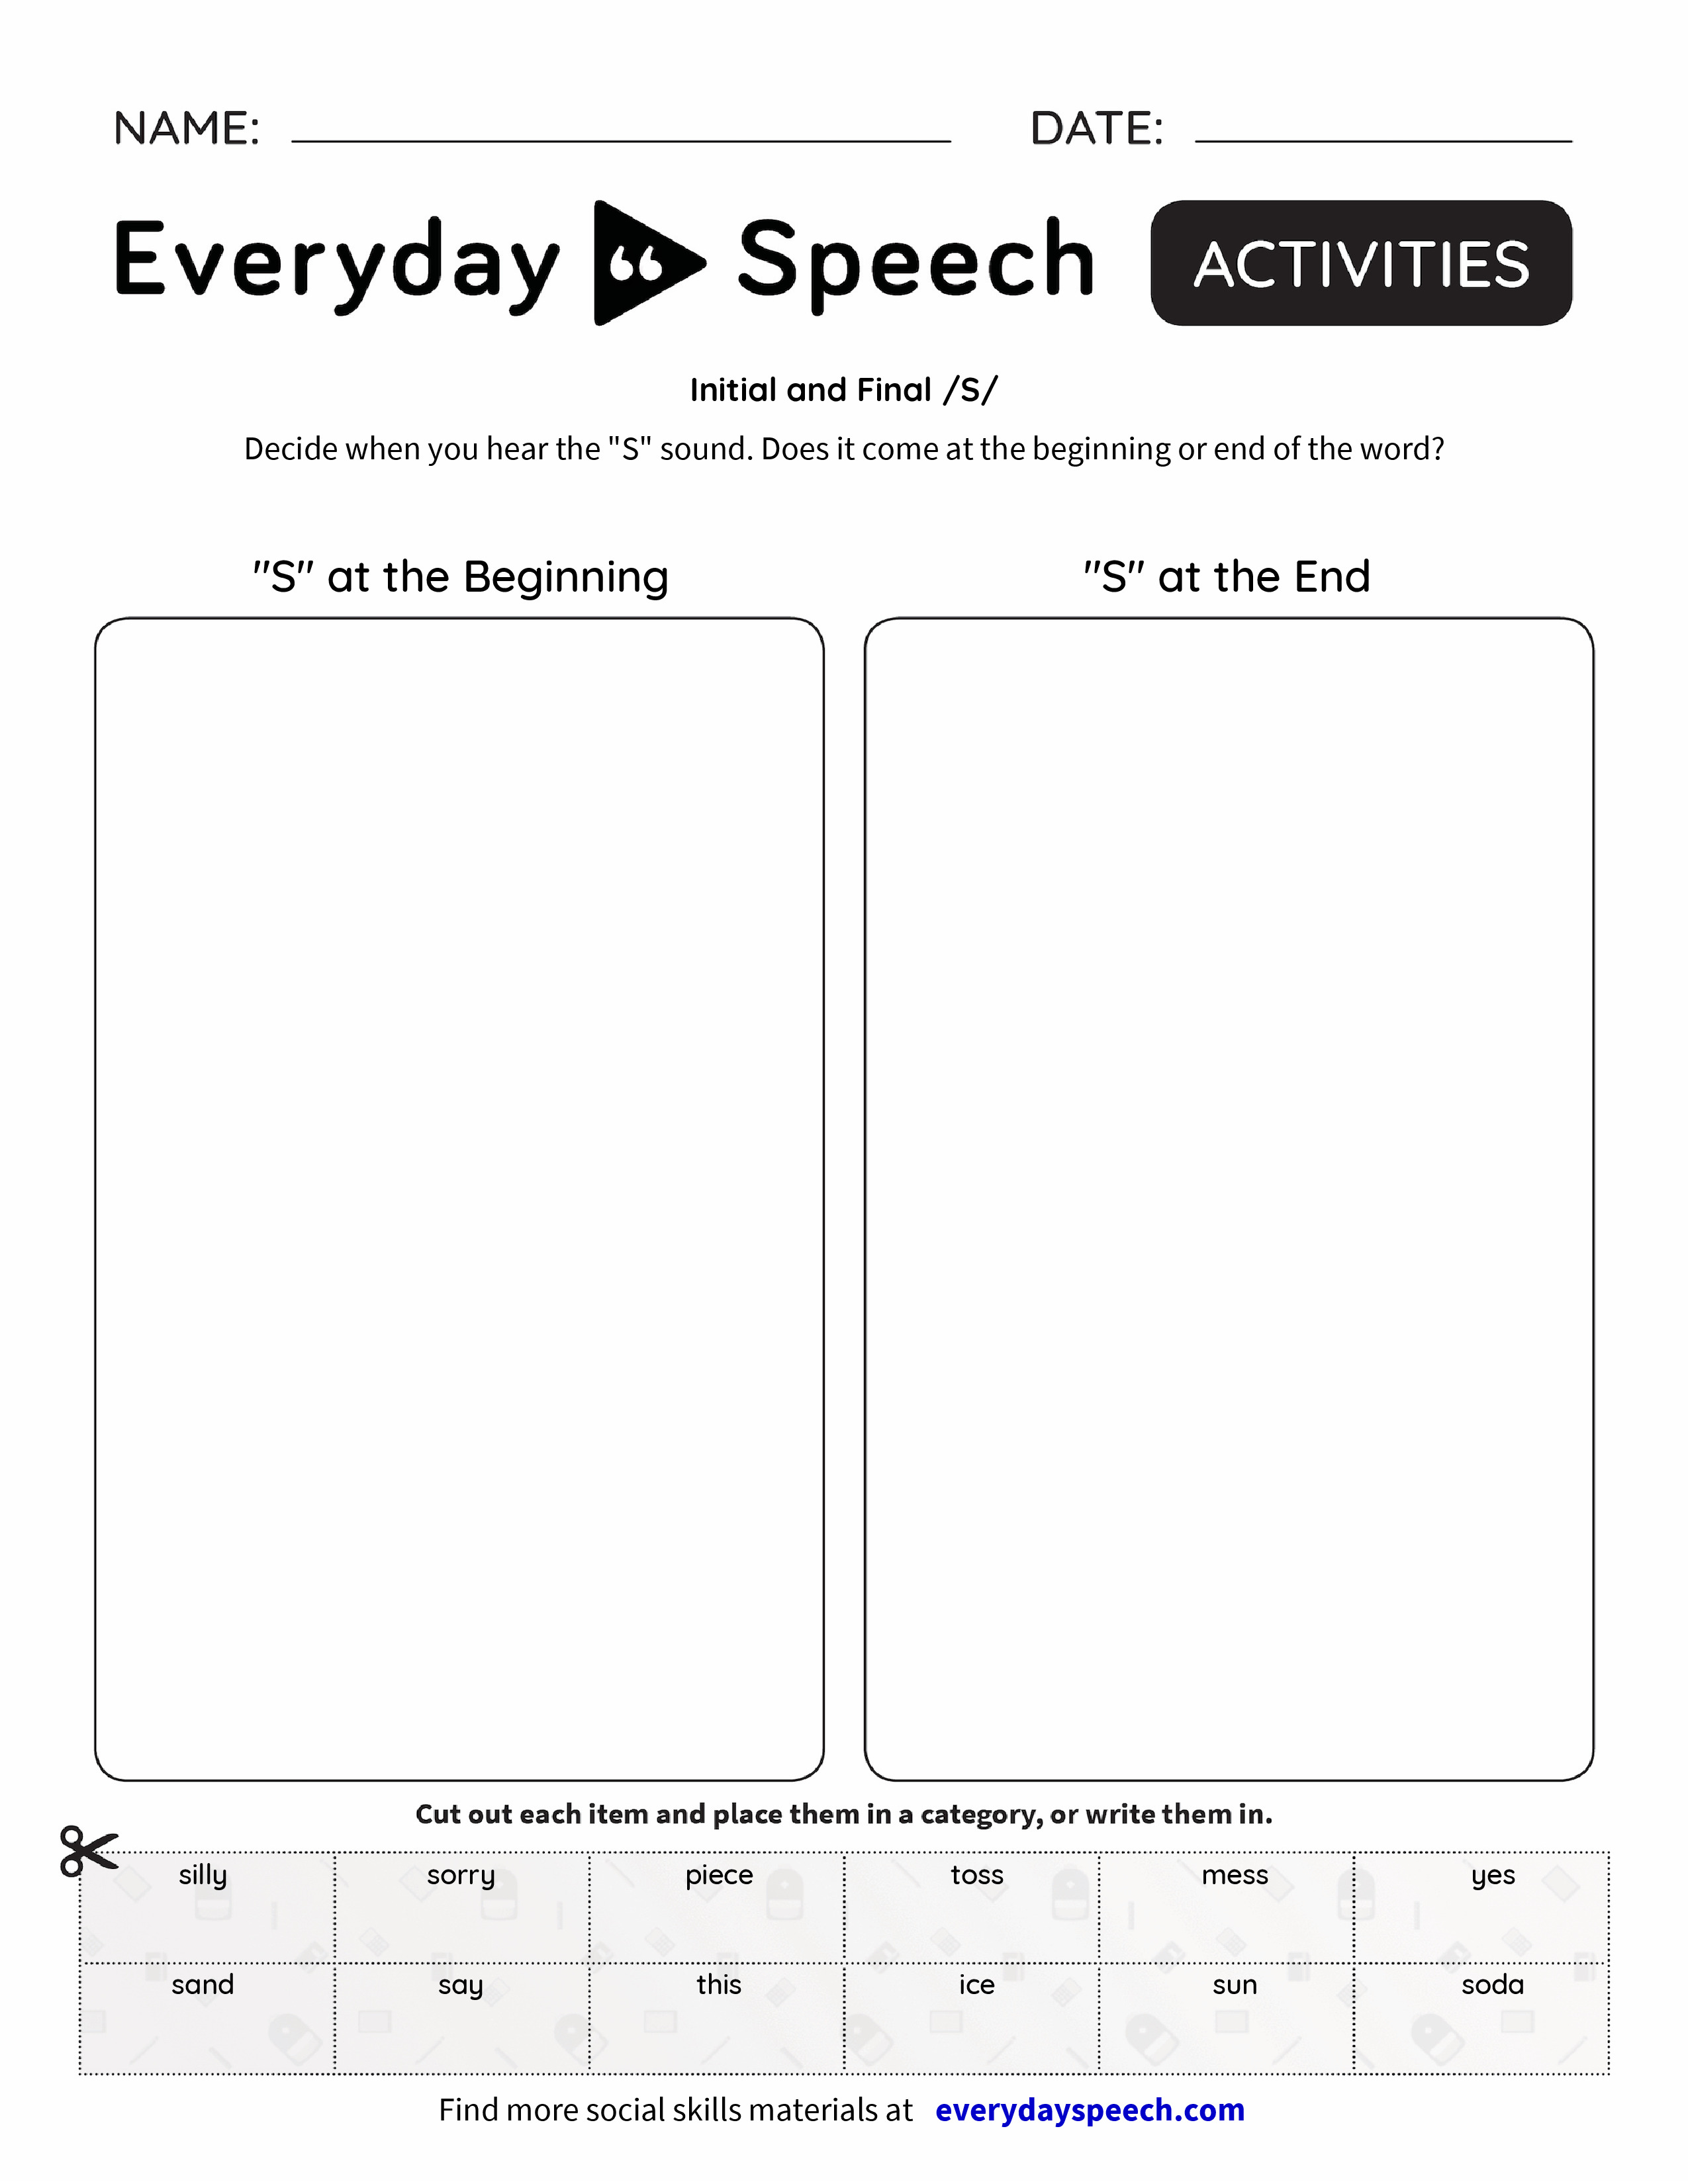 Initial and Final S Everyday Speech Everyday Speech – S Sound Worksheets